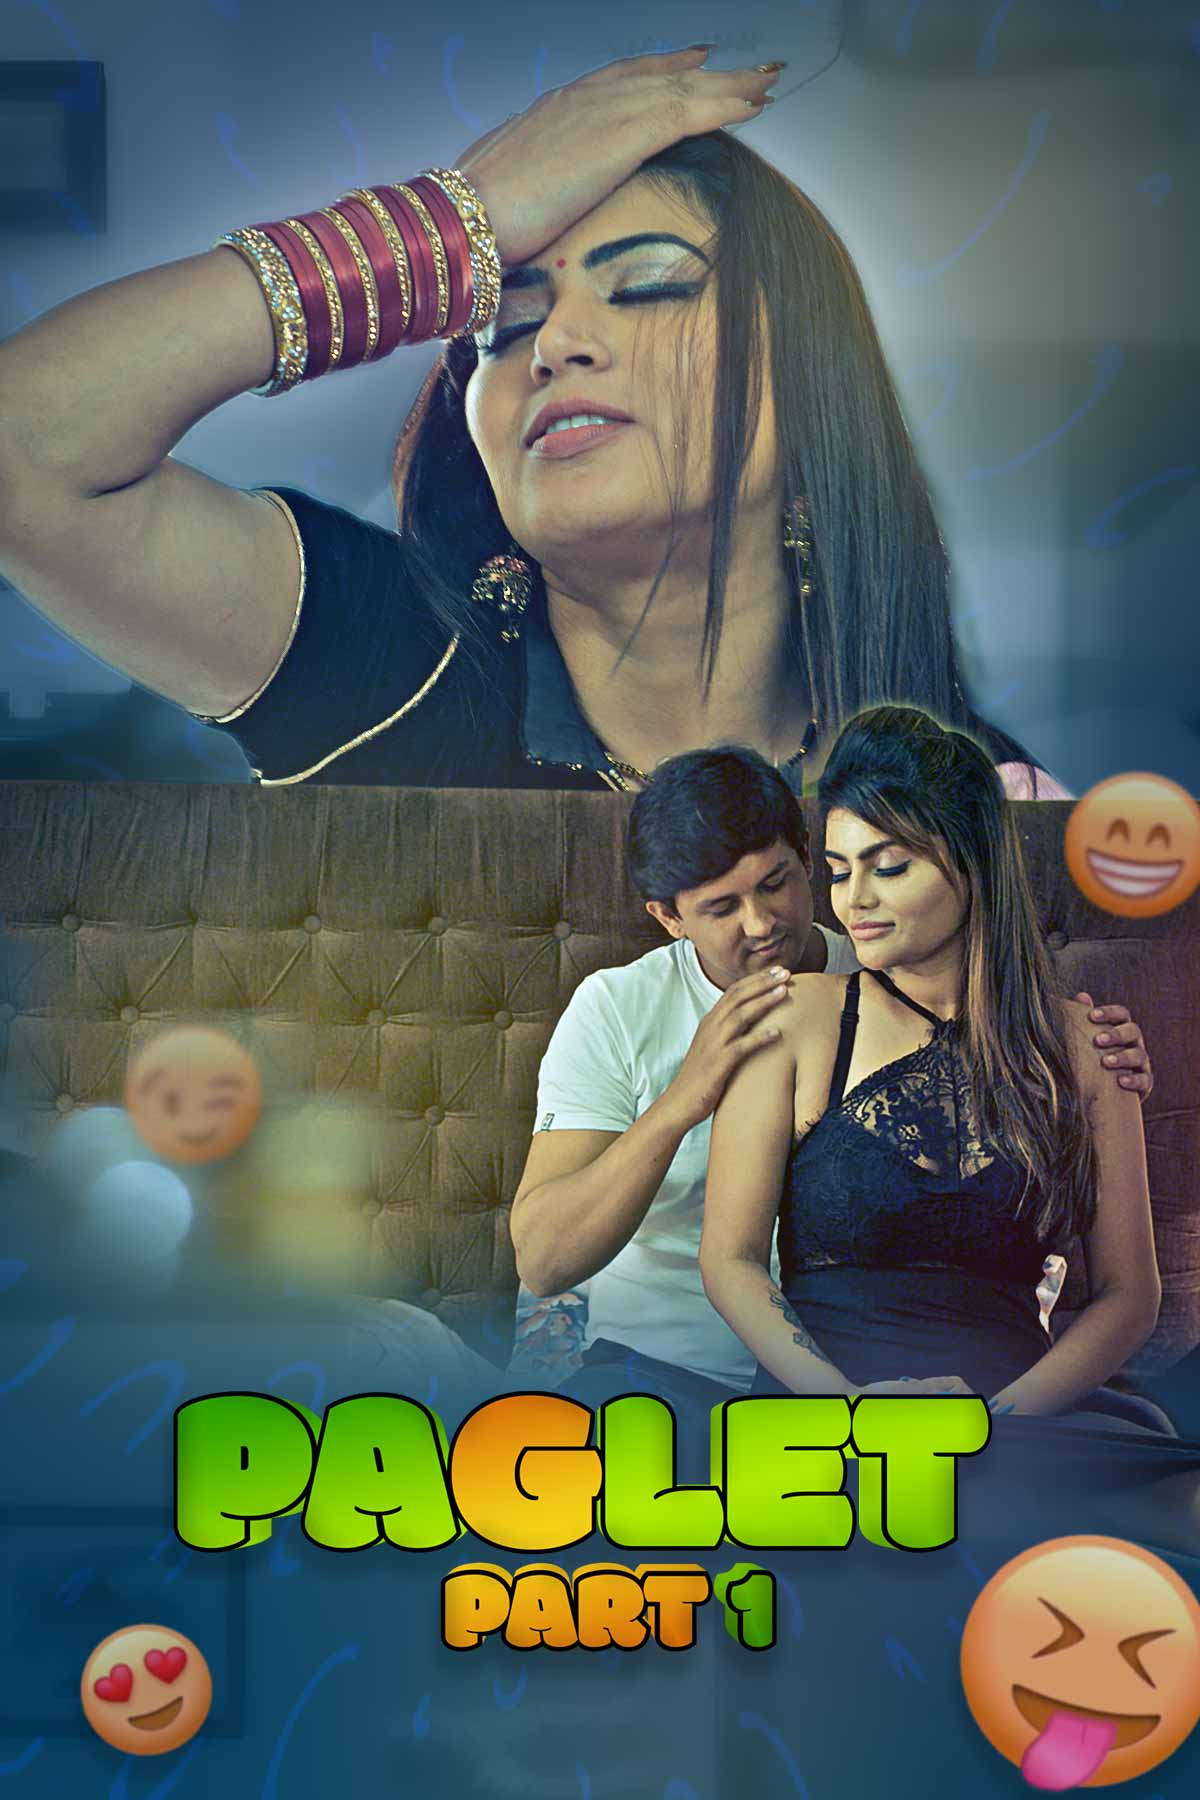 Paglet Part 1 (2021) UNRATED 720p HEVC HDRip Hindi S01 Complete Hot Web Series x265 AAC [250MB]